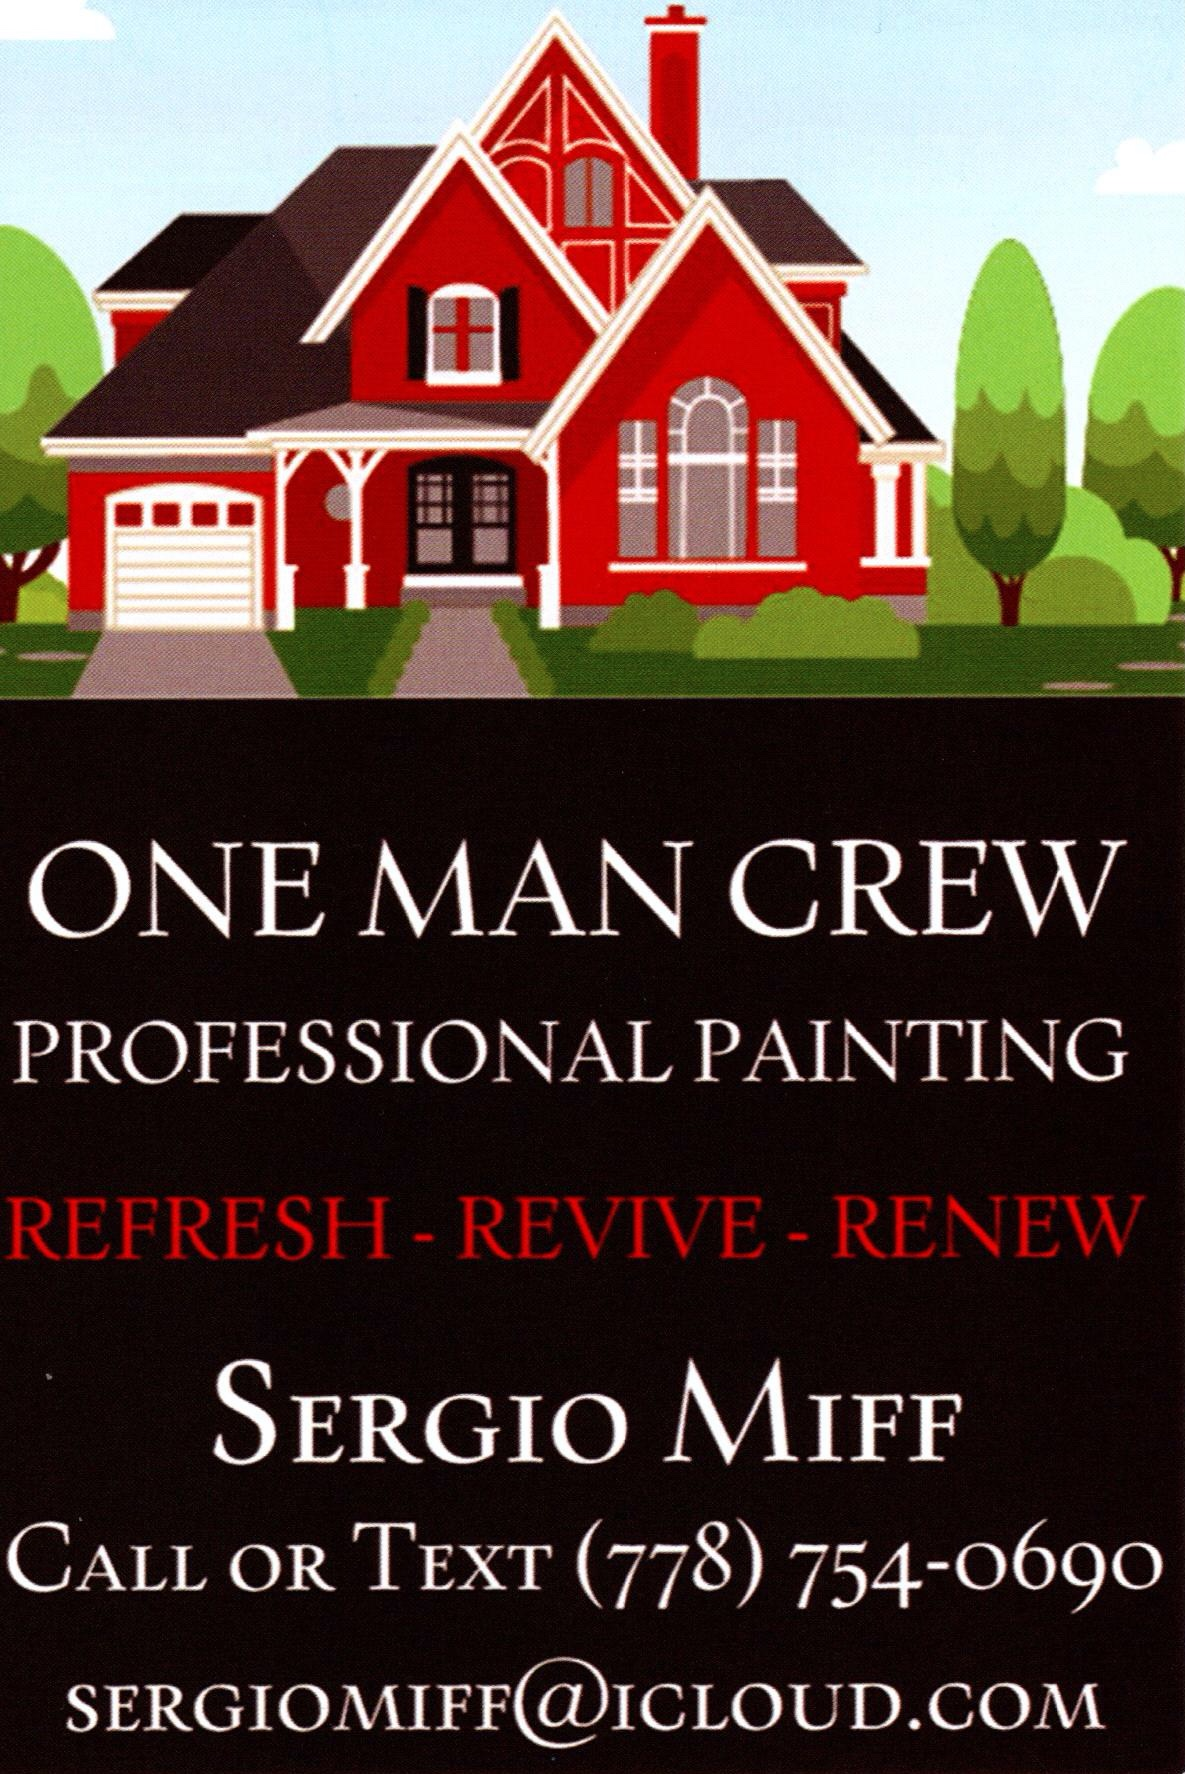 One Man Crew Professional Painting